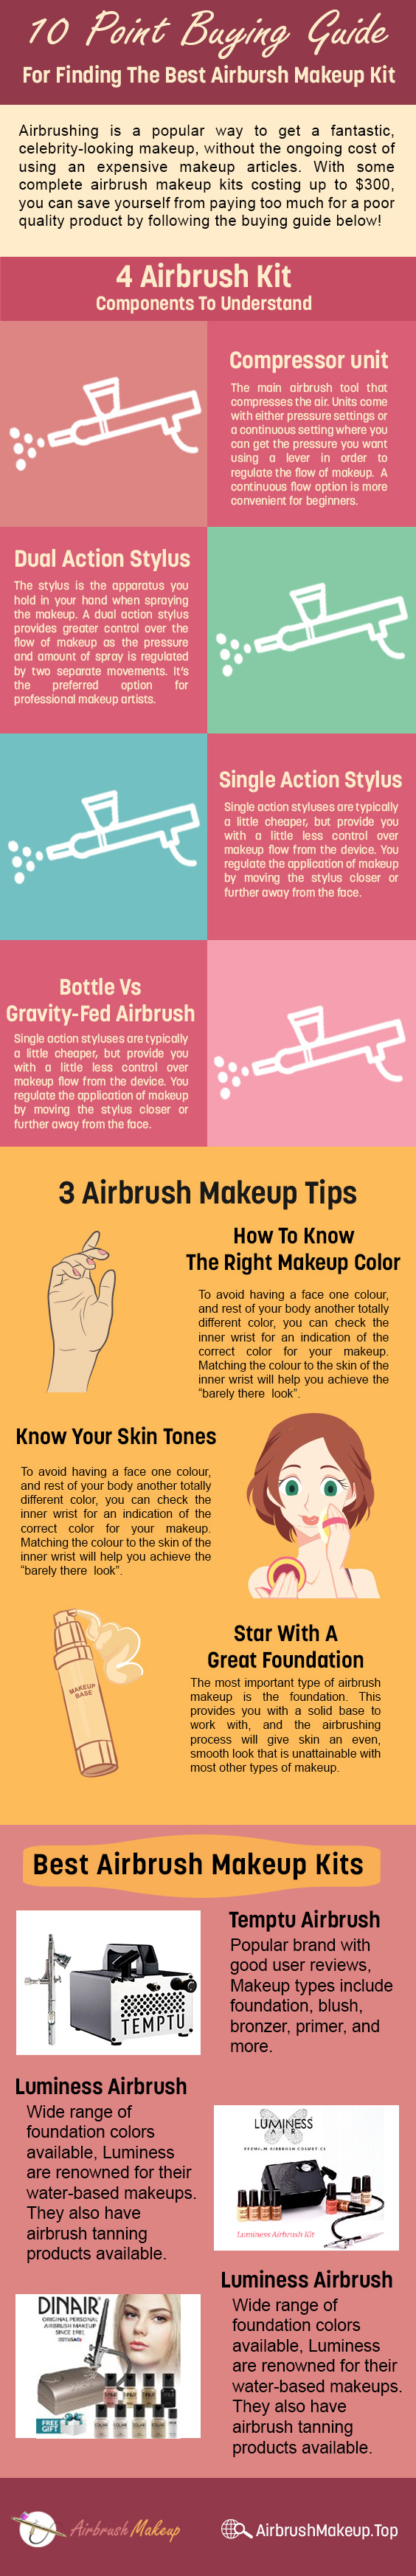 airbrush-makeup-kit-buying-guide-infographic-plaza